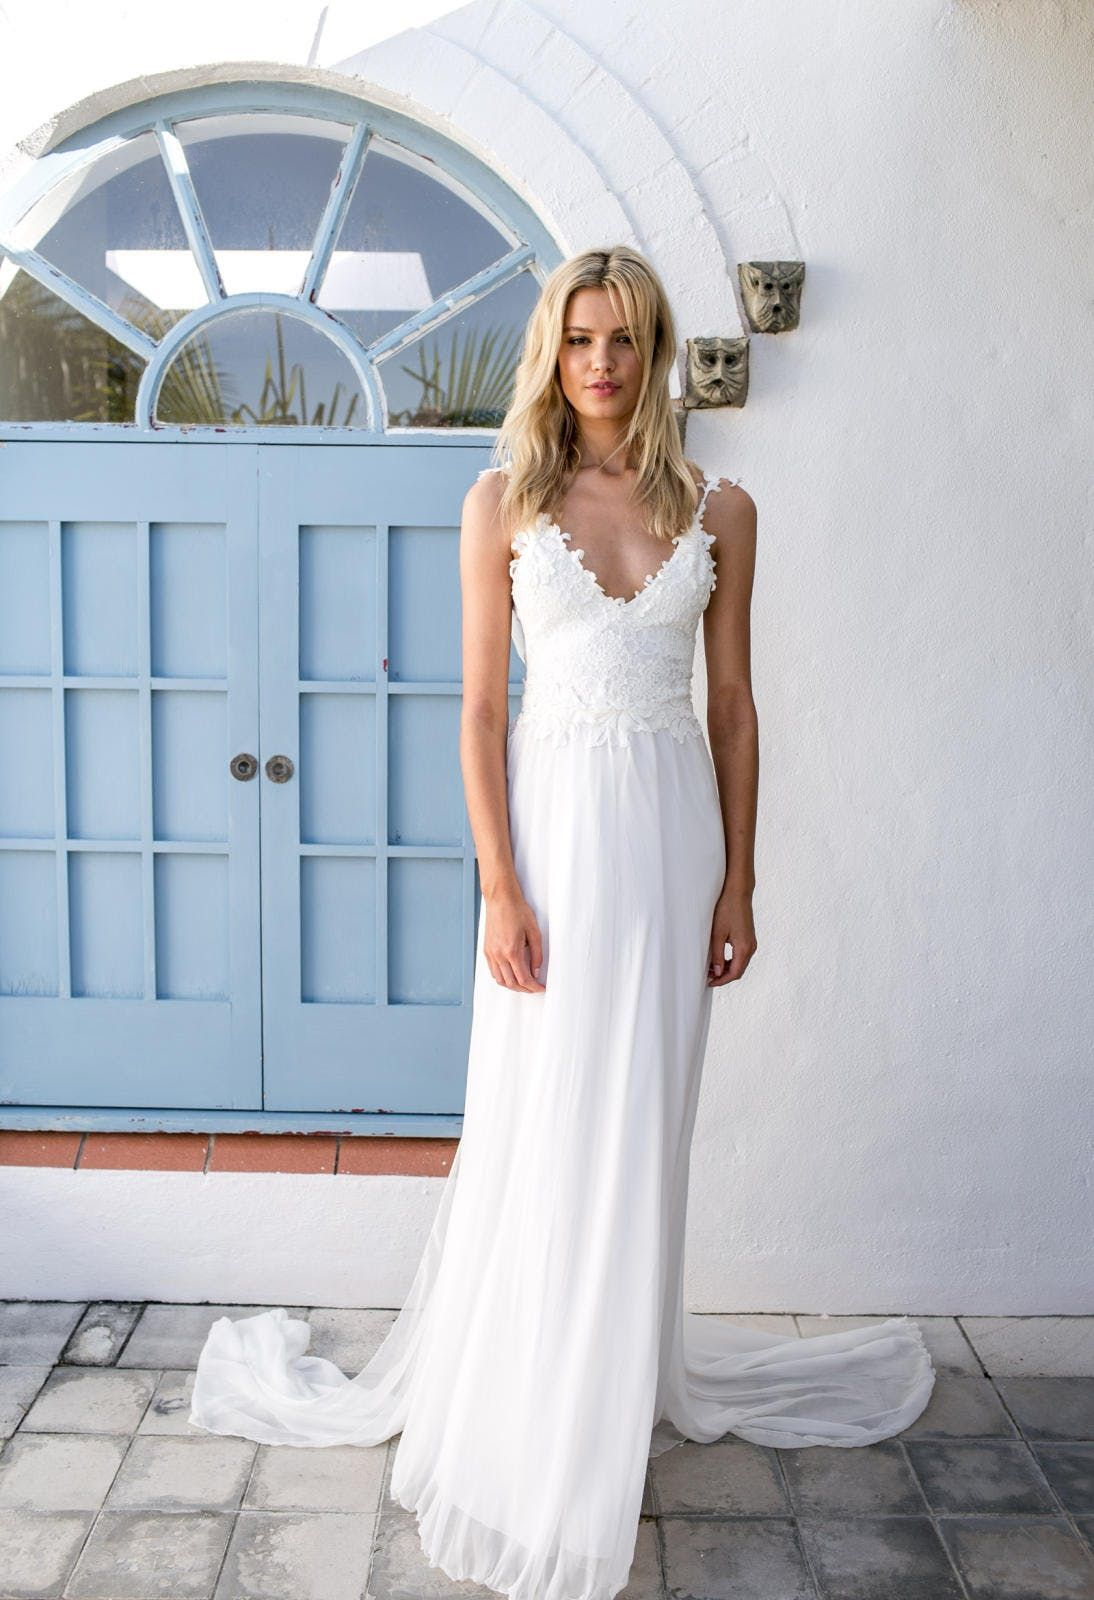 This australian wedding dress site has the nontraditional dress of